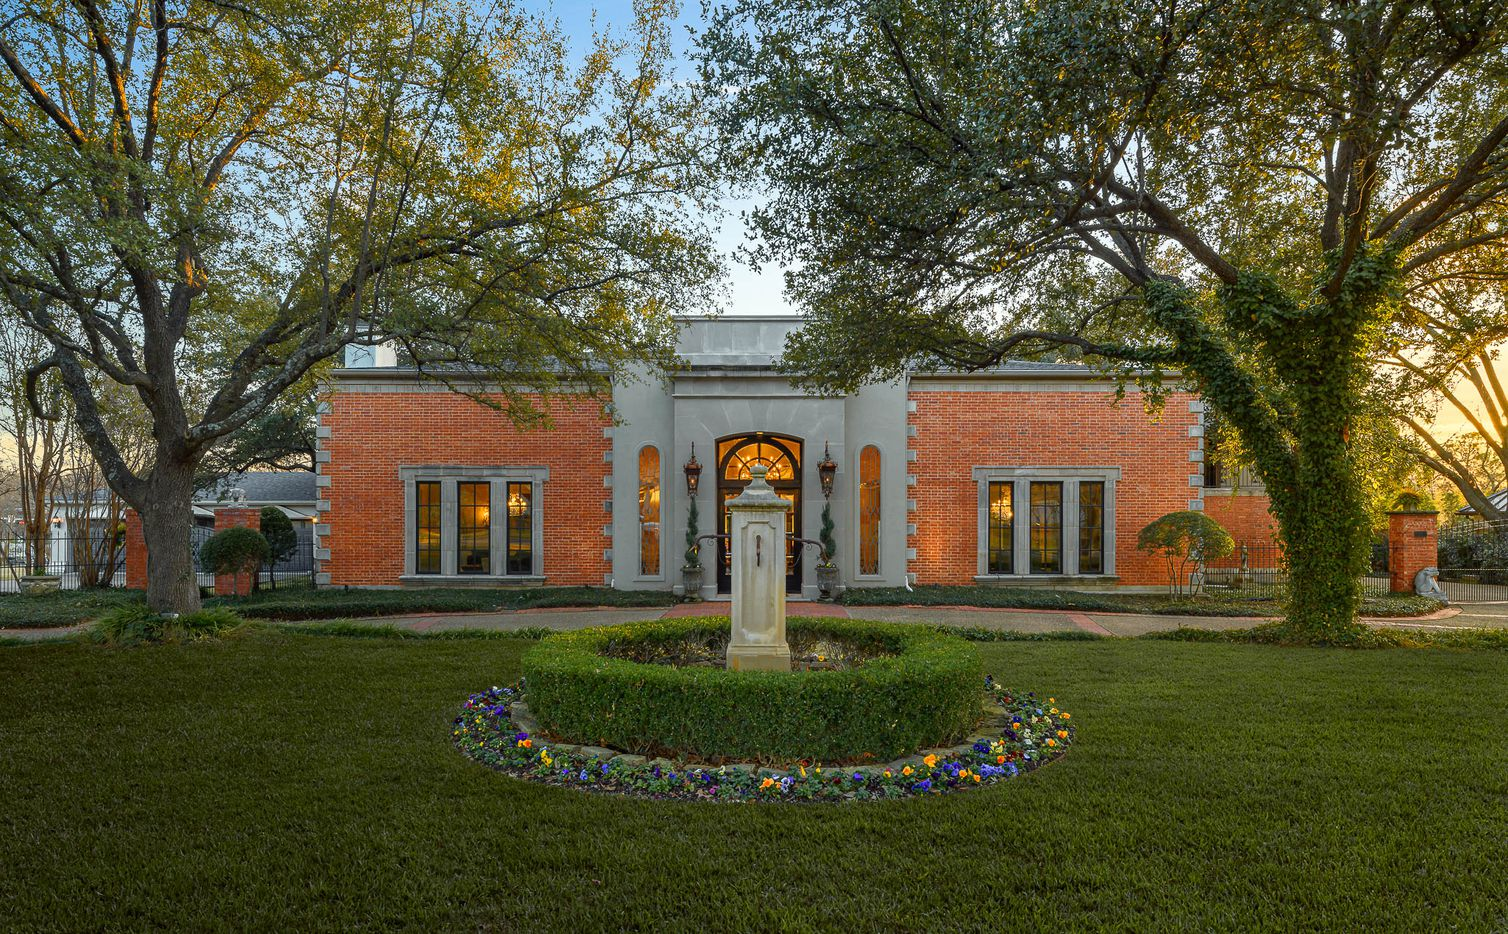 Take a look at the house at 5130 Radbrook Place in Dallas, TX.